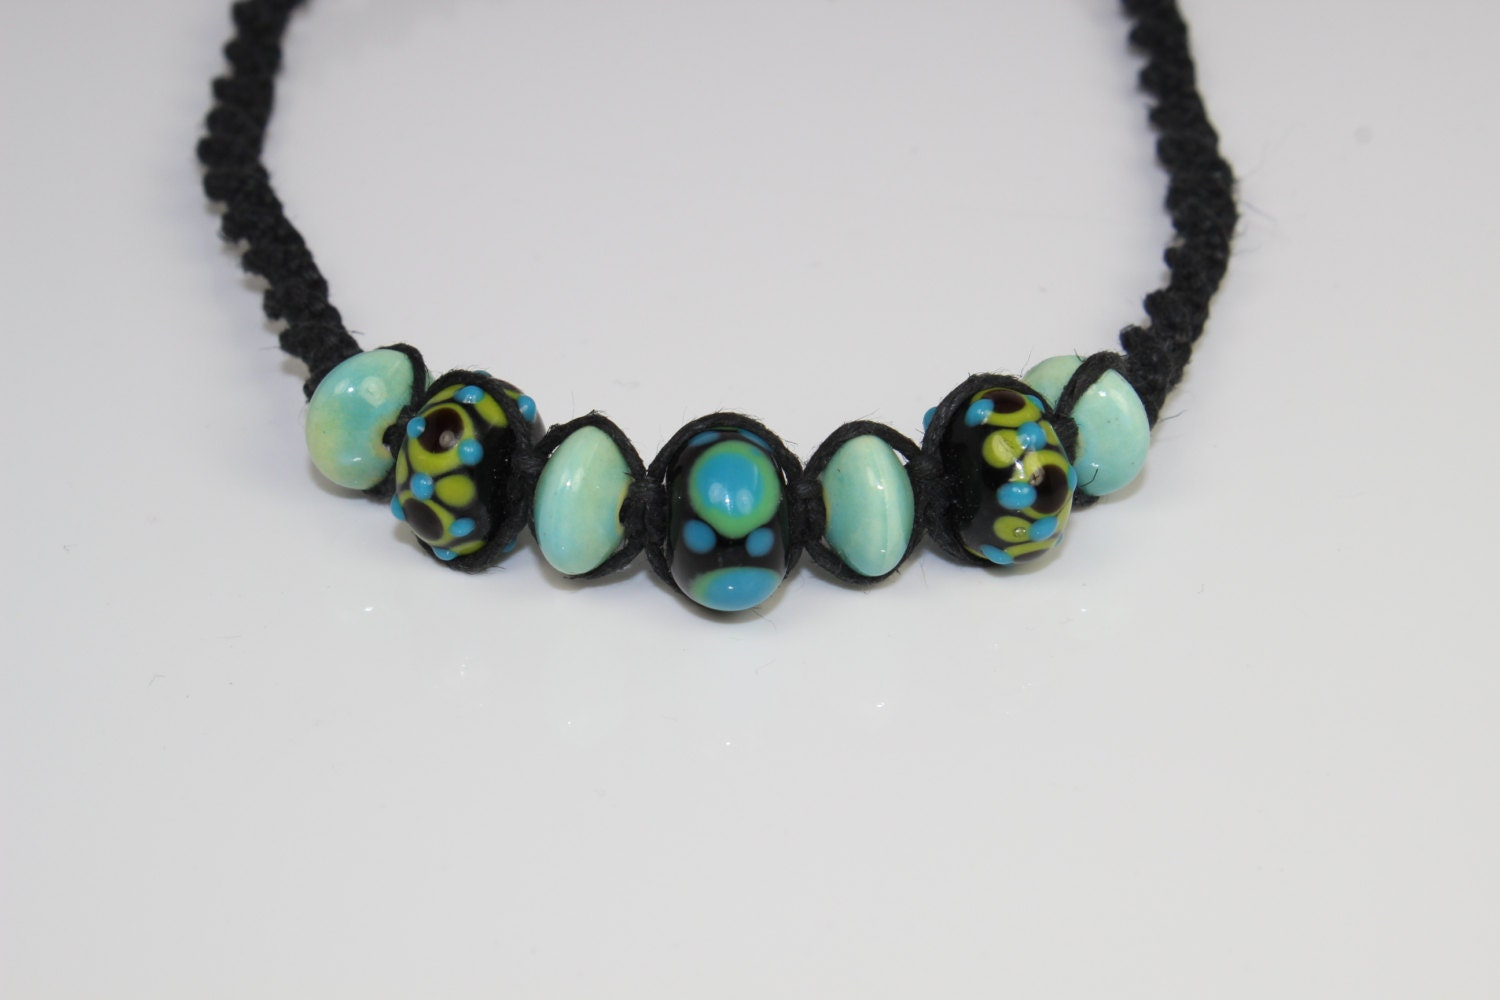 RESERVED - Sweepstakes Giveaway - Glass and Ceramic on Black Hemp - Jewelry - Necklace - FREE Shipping (US Only)